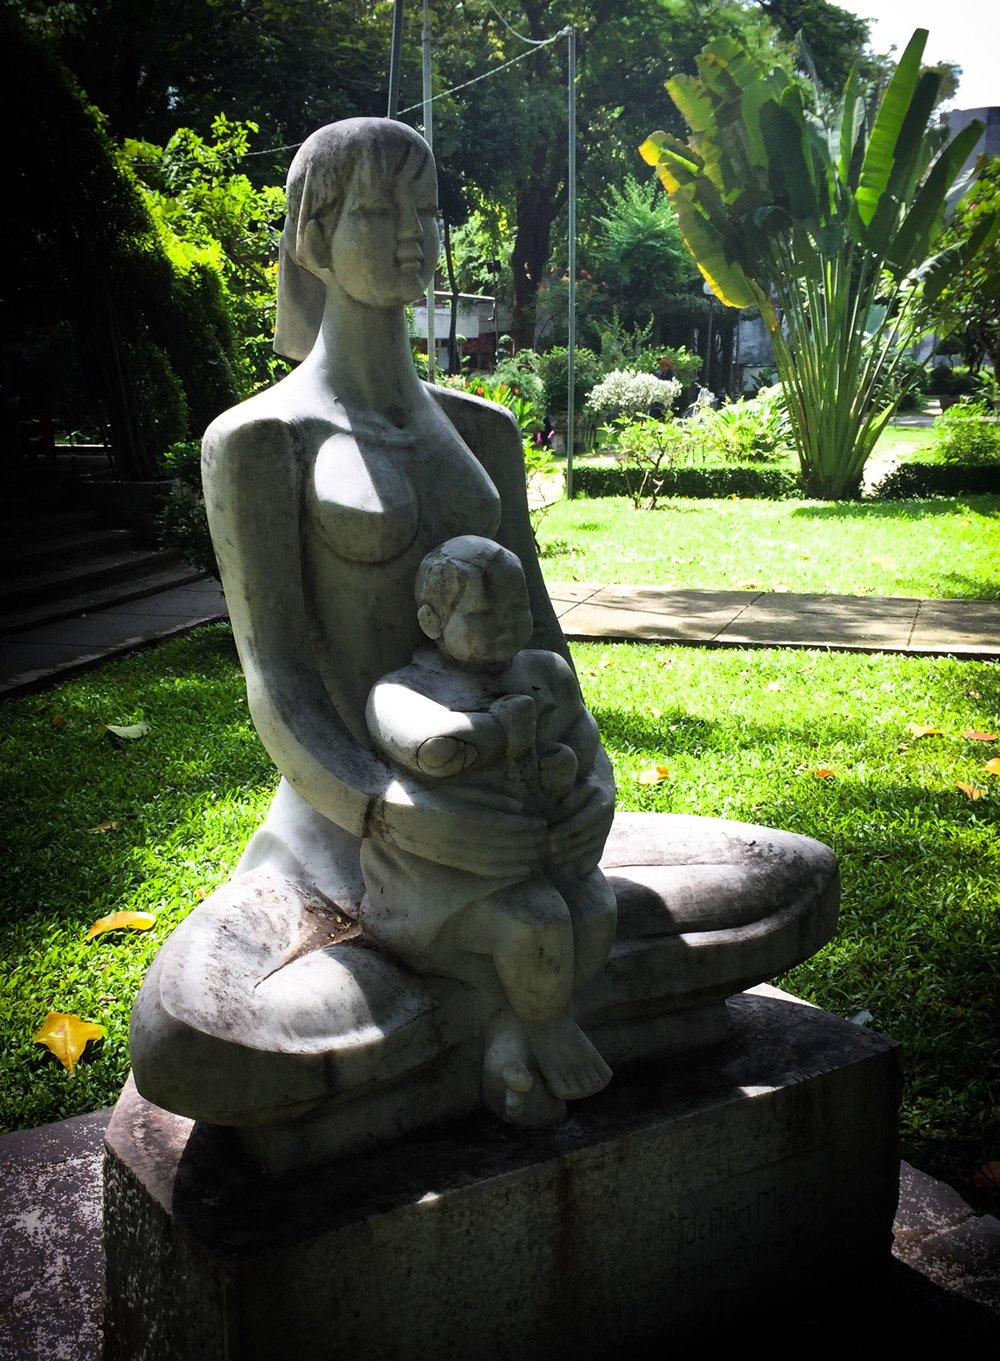 'Mother & Child' © Naida Ginnane 2017 iPhone 6s. A stone sculpture in a Vietnamese park acts as a symbol of peace representing the ideas of love and family.